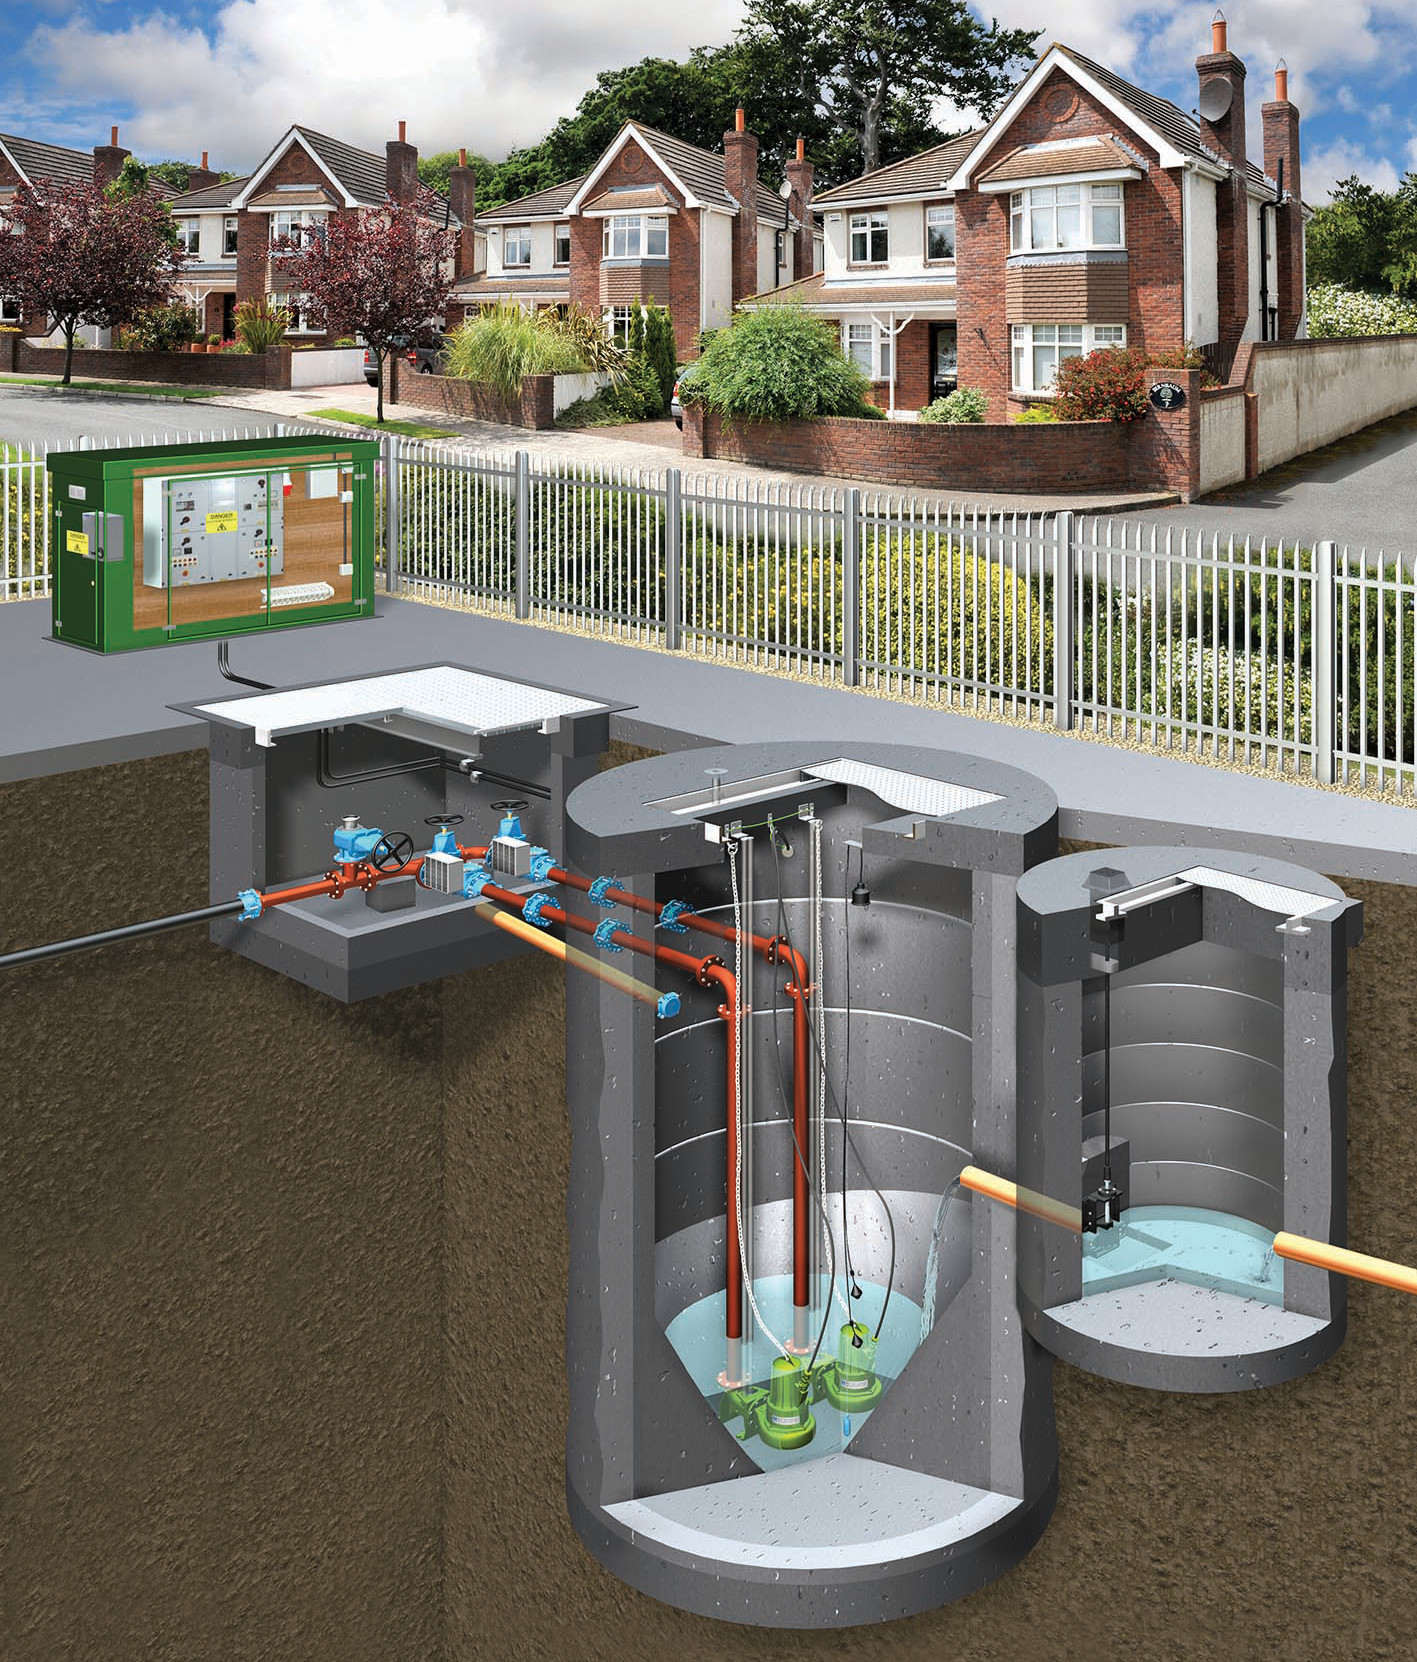 Adoptable Pumping Stations on residential bridge design, residential septic tank design, residential drainage design, residential irrigation design, residential boundary wall design, residential patio design, residential deck design, residential fence design, residential garage design, residential gate design, residential pond design, residential garden design, residential office design, residential kitchen design,